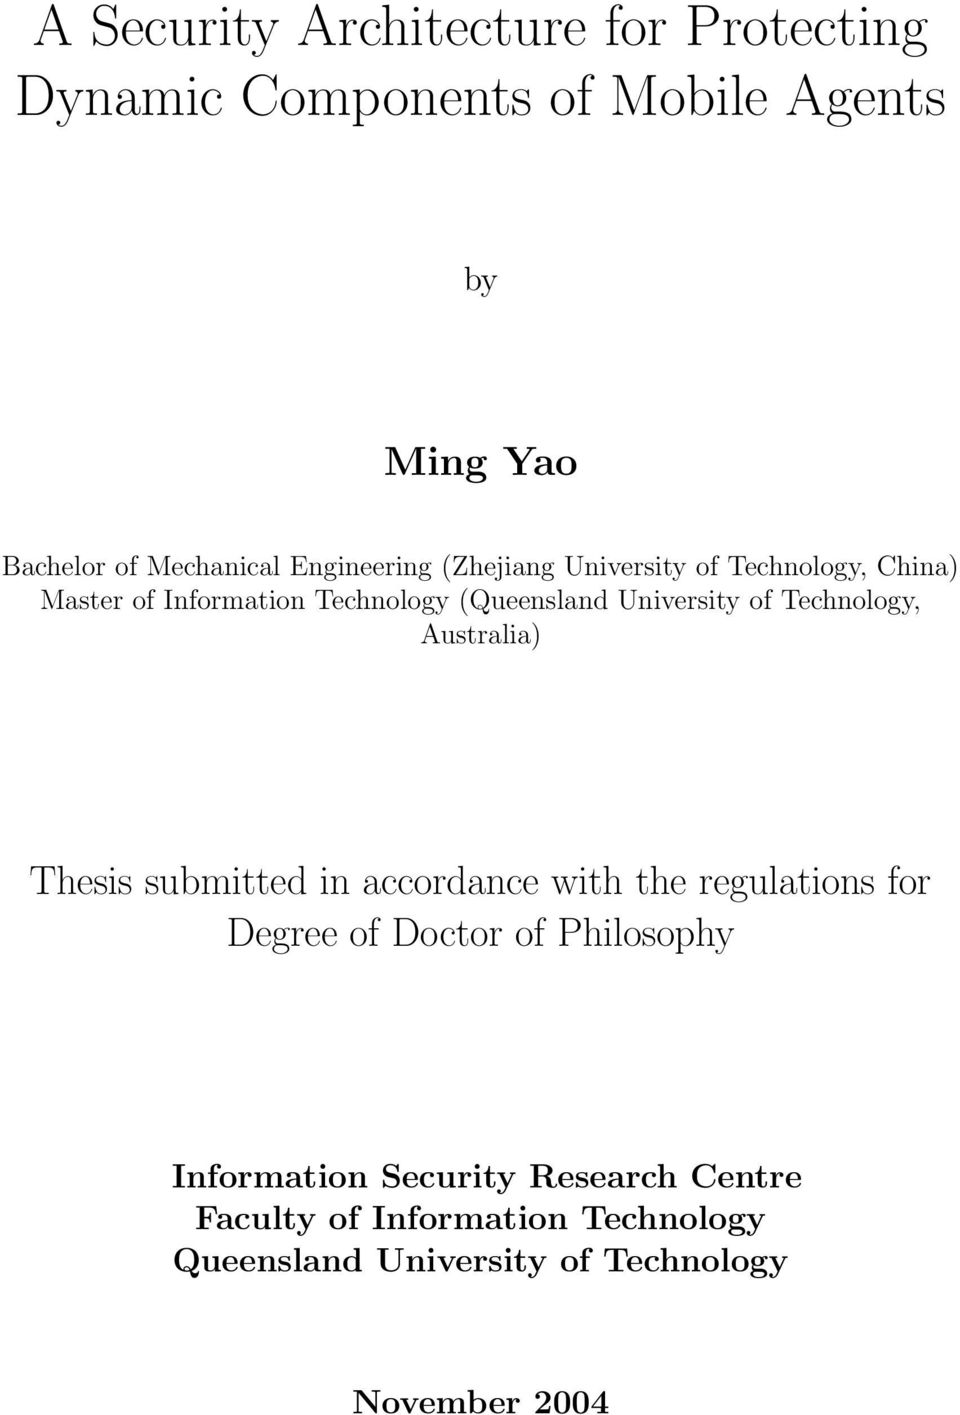 Technology, Australia) Thesis submitted in accordance with the regulations for Degree of Doctor of Philosophy